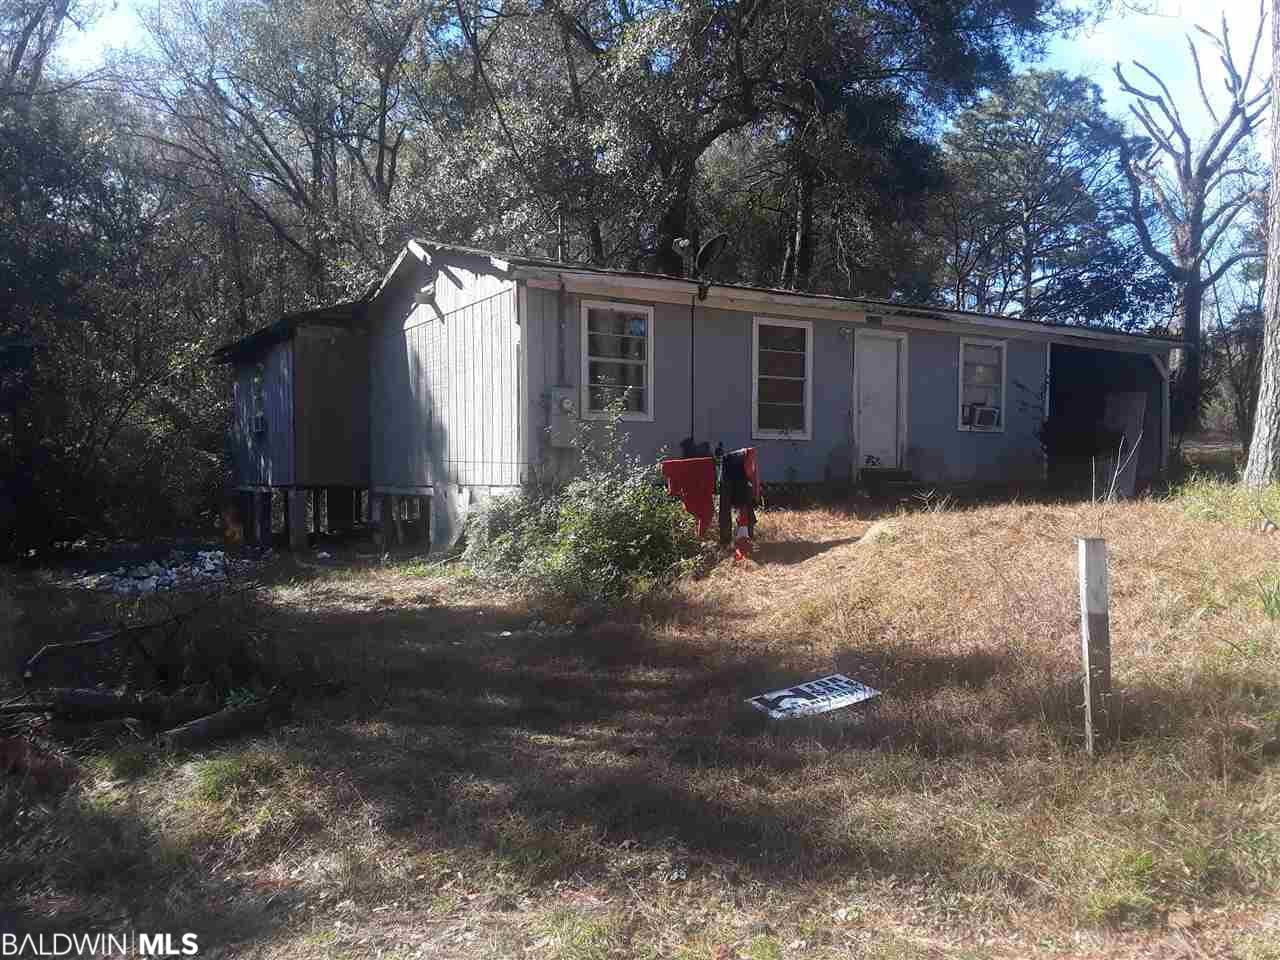 "An awesome opportunity to own a 3 bedroom 1 bath home on 1 acre in Spanish Ft. The Mobile home does have a month to month renter now at 200 a month. Both the Home and the Mobile Home are to be Sold "" As Is Where Is "" and at no value. Price is for the land value only. Buy this home and fix it up to live in or as an investment opportunity. Knock it down and build something new. There is a approximately 15.9 acres adjacent to this property as well for 135,000. You could buy roughly 16.9 acres, 1 Home and a Mobile Home in the heart of Spanish Ft for 190,000."